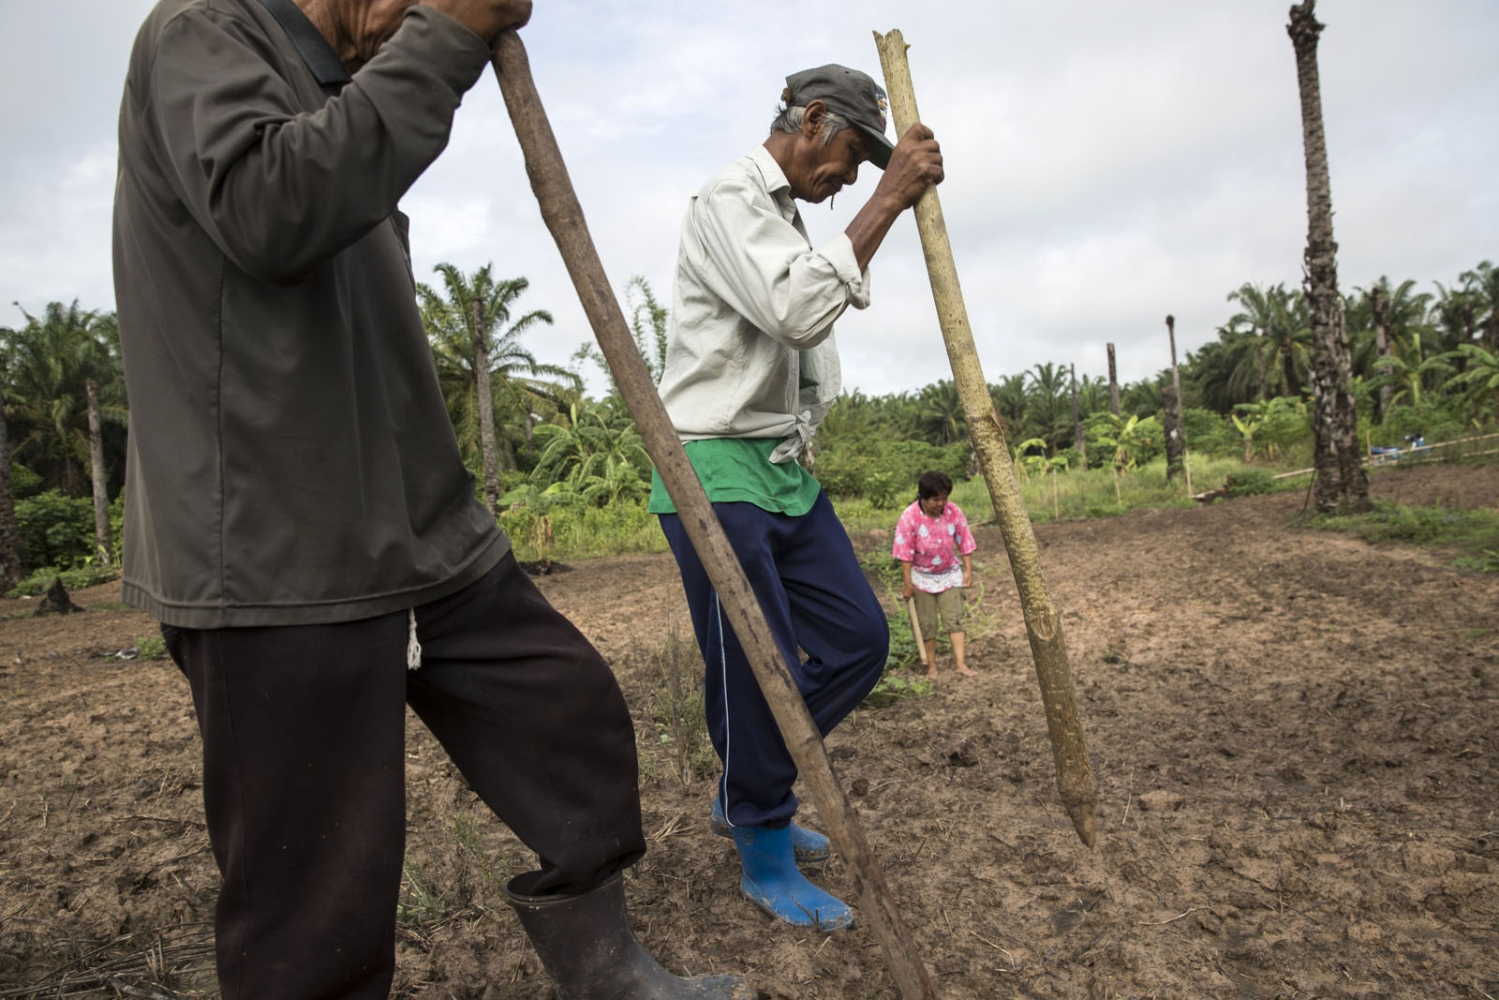 Community members plant corn on land cleared of palm oil trees.